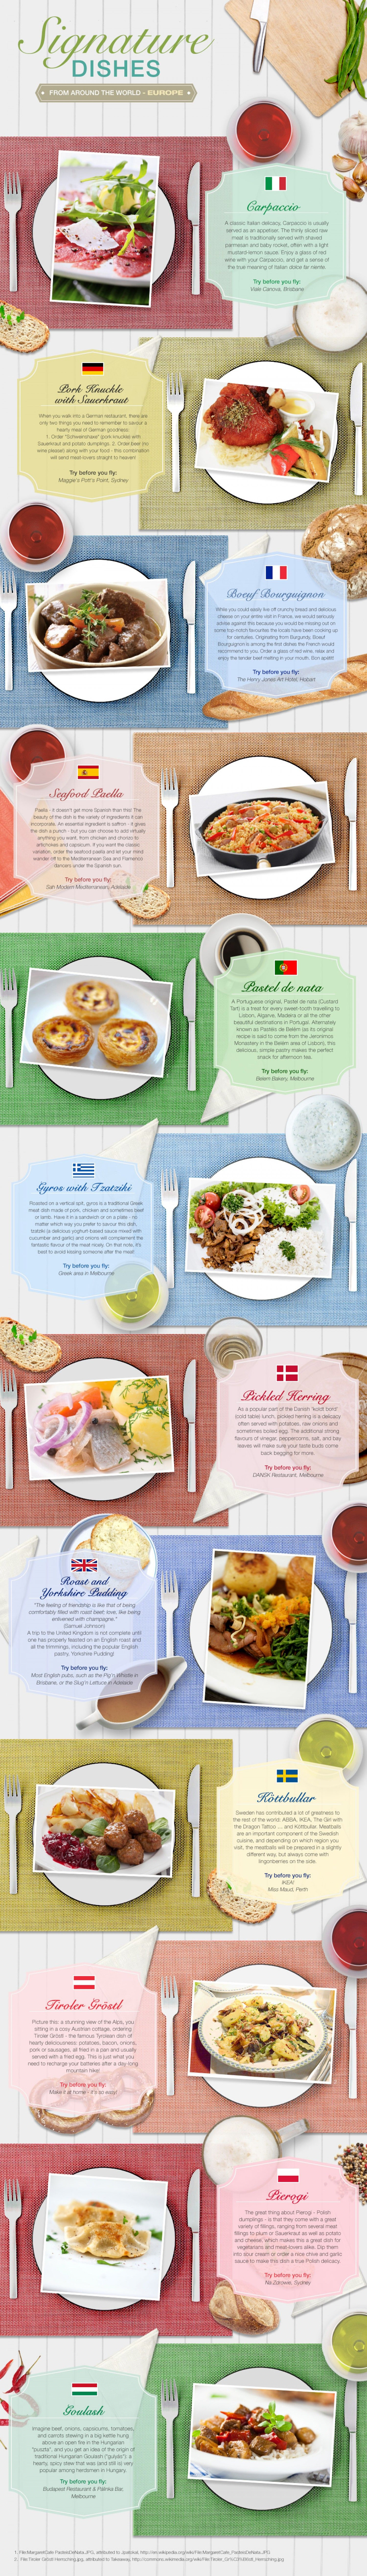 Signature Dishes From Around The World Europe Infographic Food